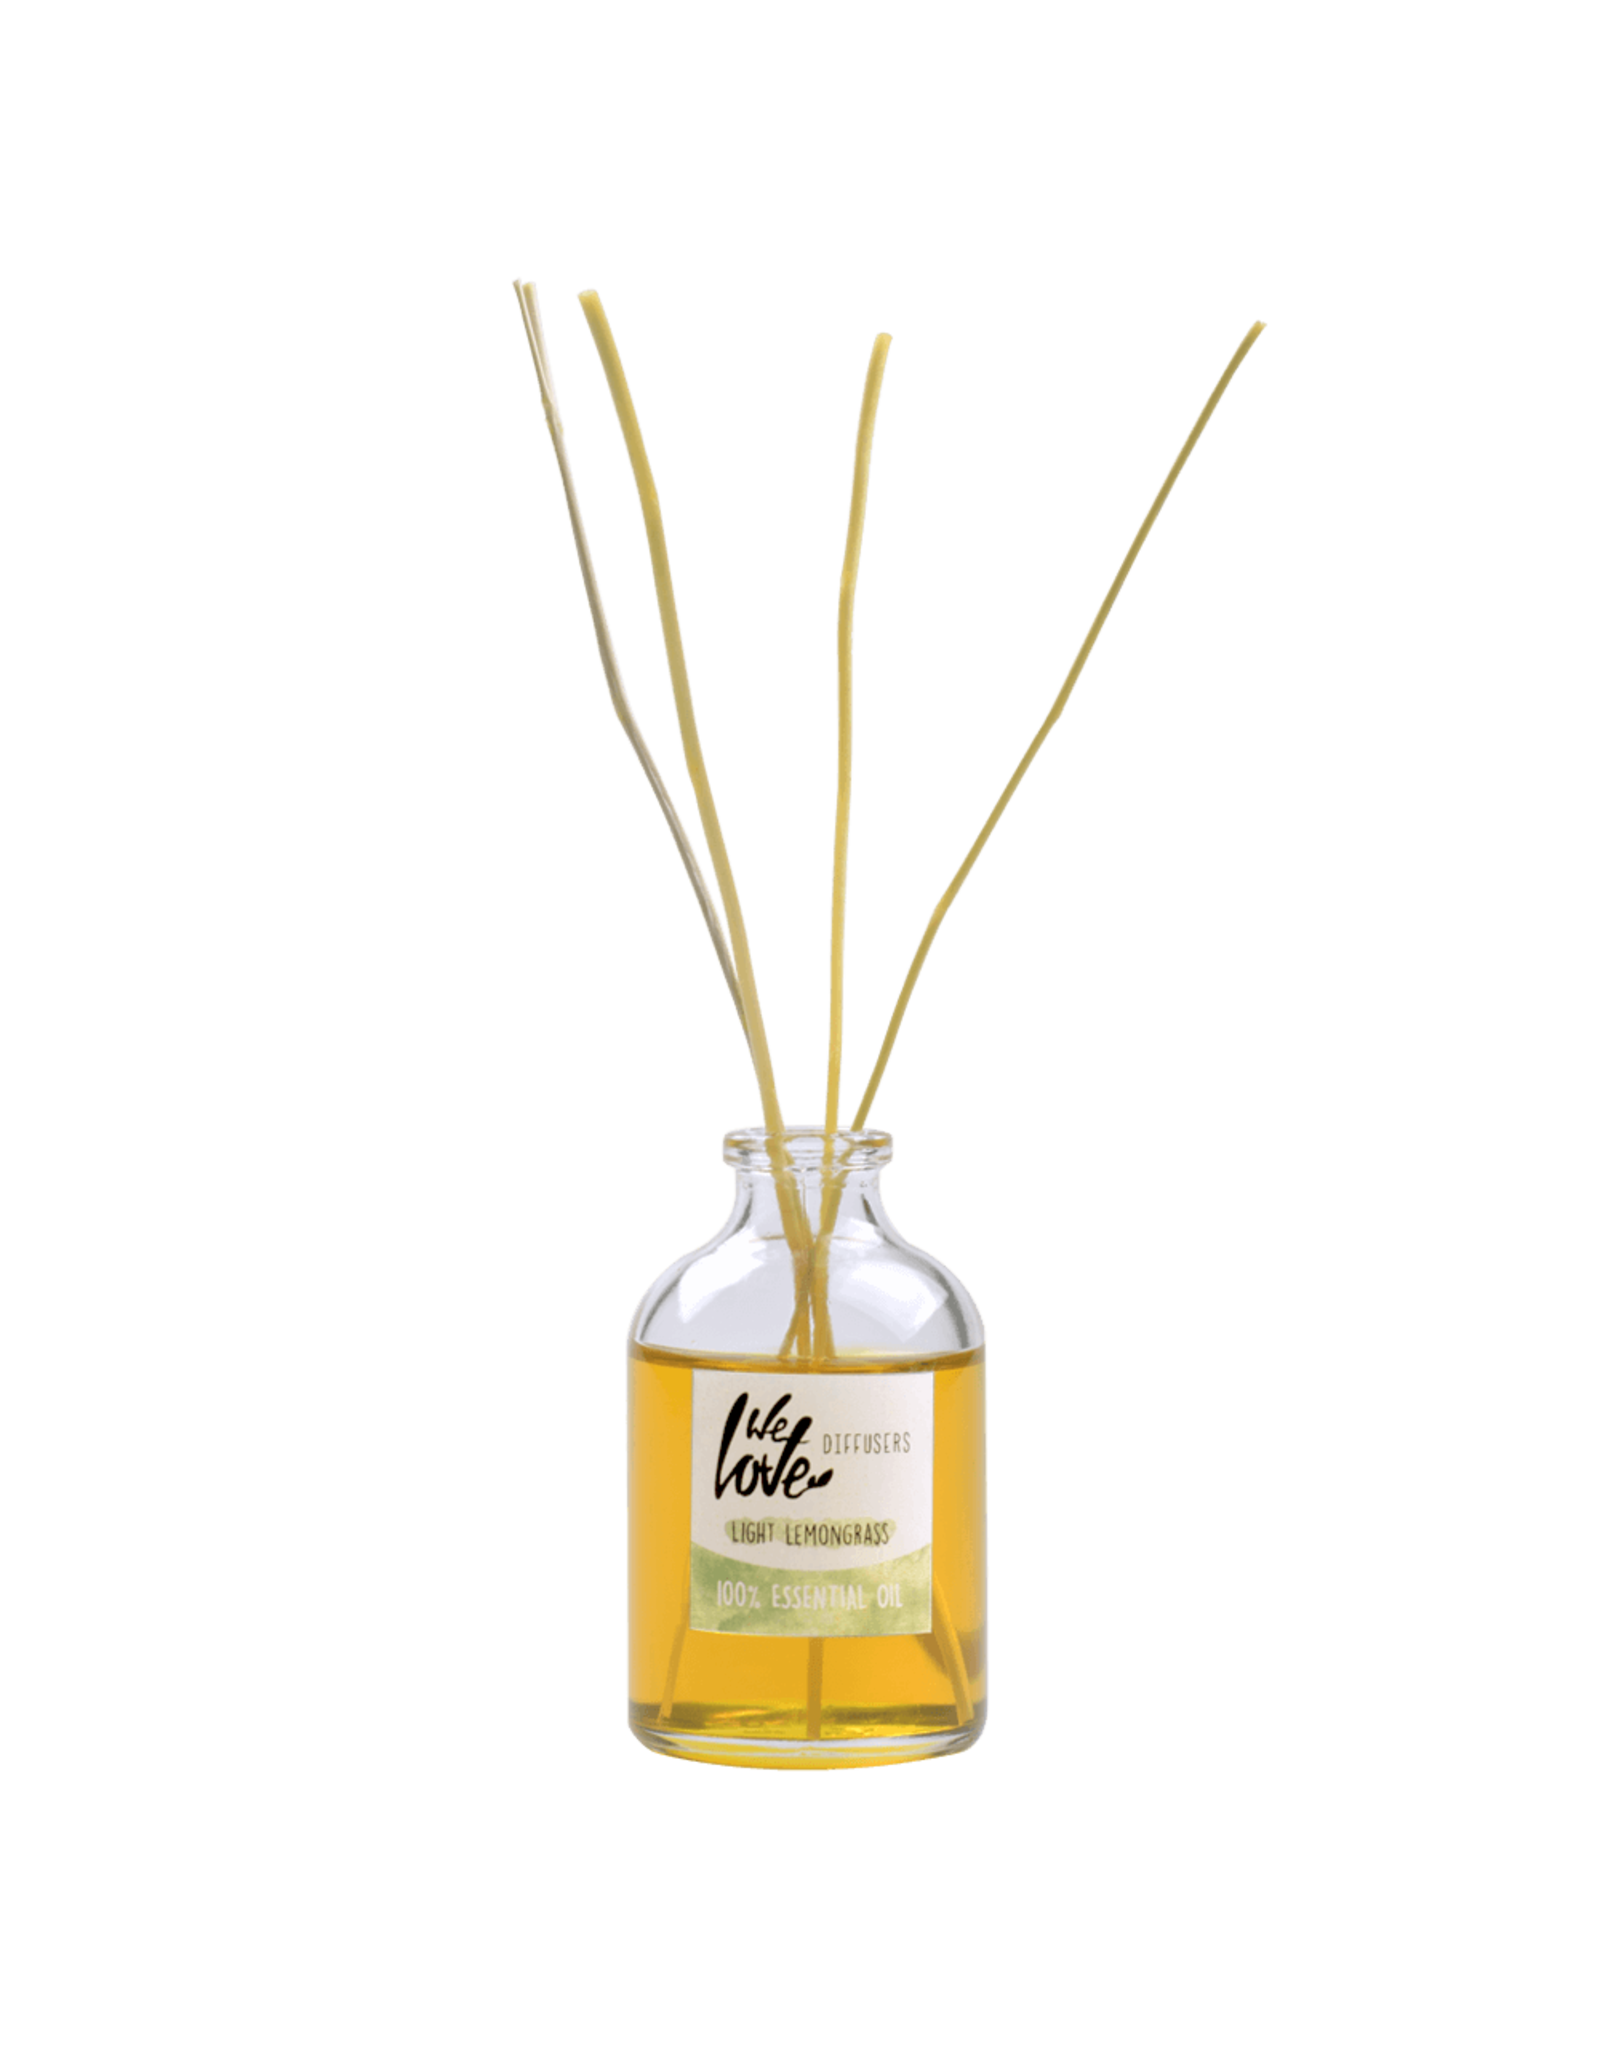 We Love The Planet We love diffusers - 50ml - oil